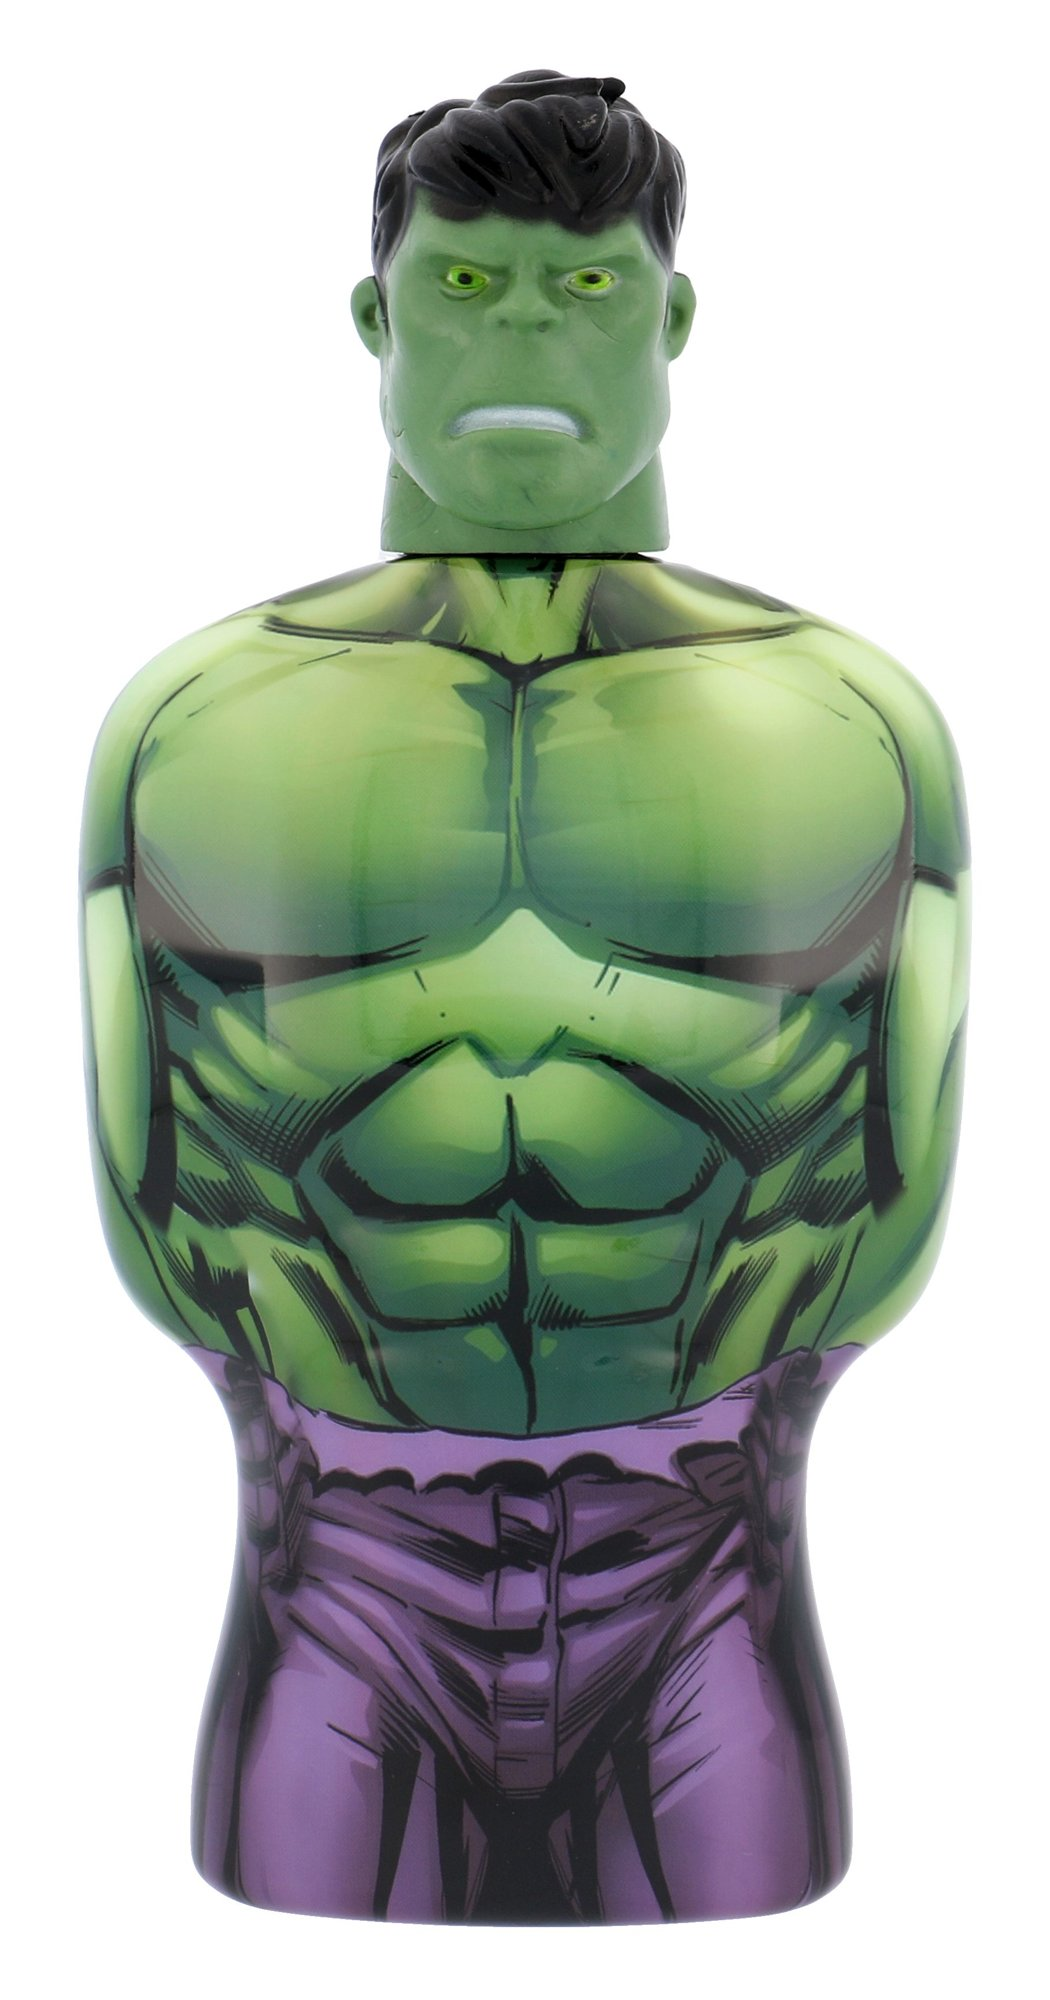 Marvel Avengers Hulk Shower gel 350ml